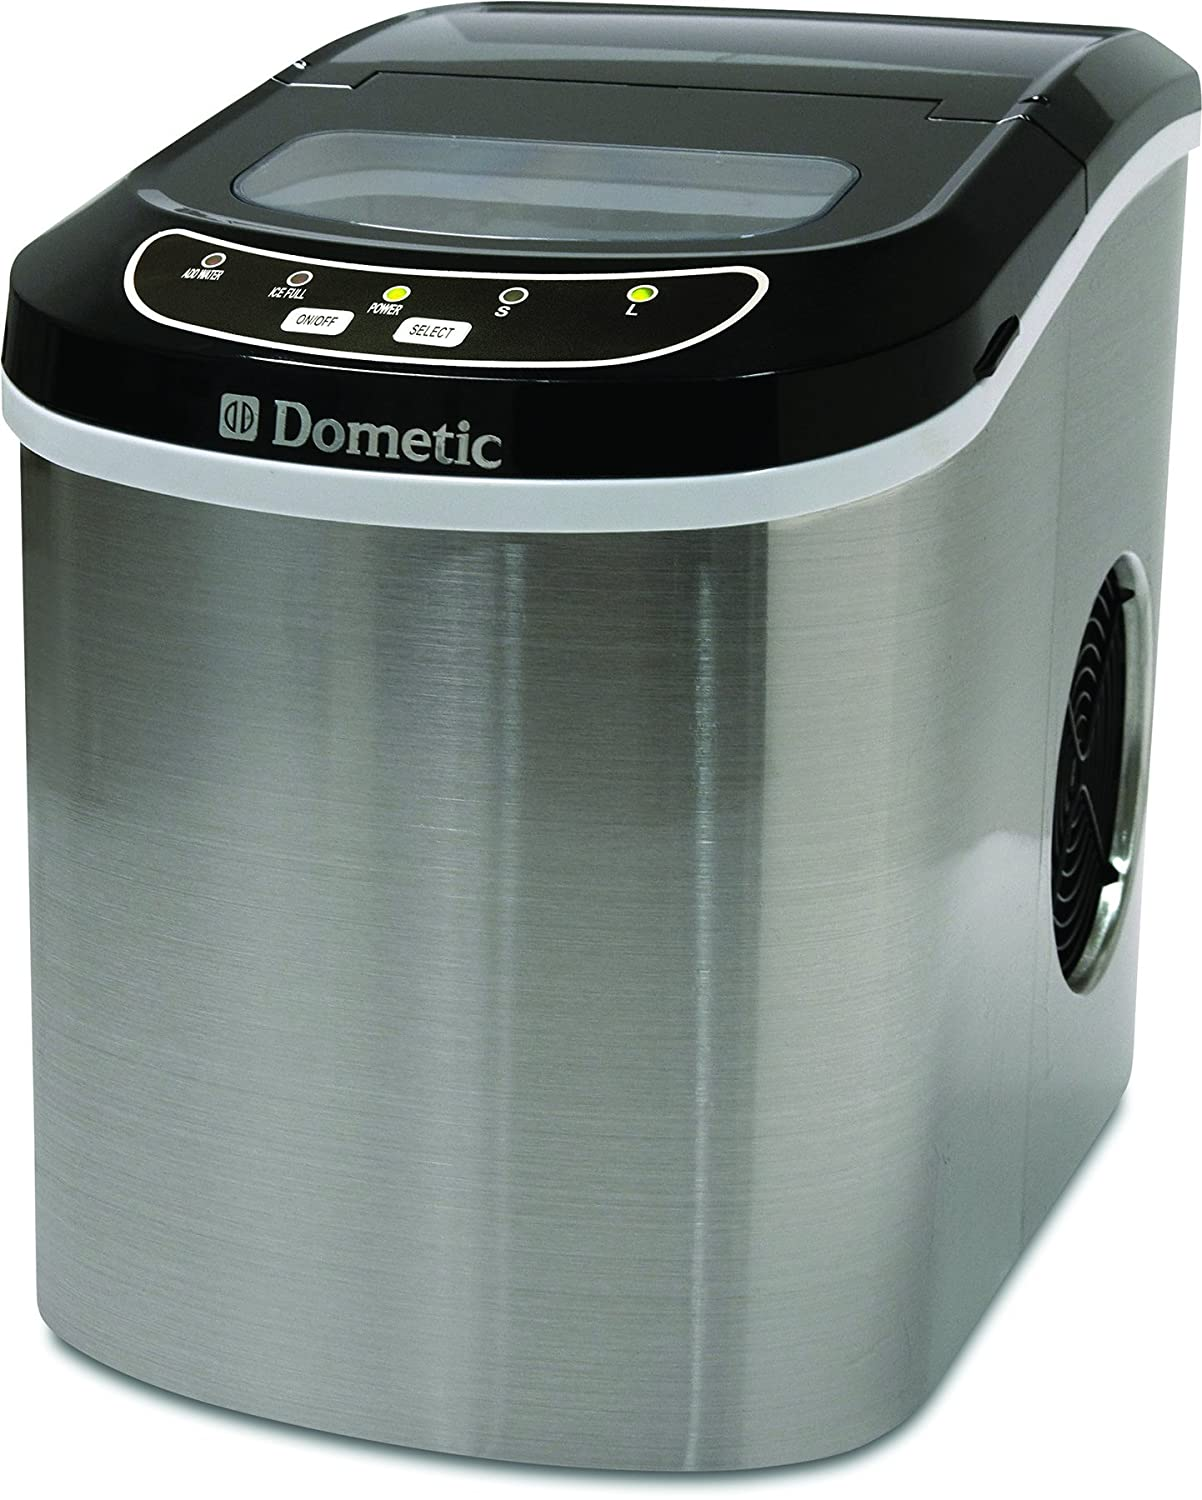 Amazon.com : Dometic HZB-12SA Compact Portable Ice Maker Chris is addicted to ice.. so when we're setup somewhere in our RV, we love having a portable ice maker. Dometic gifted us this one.